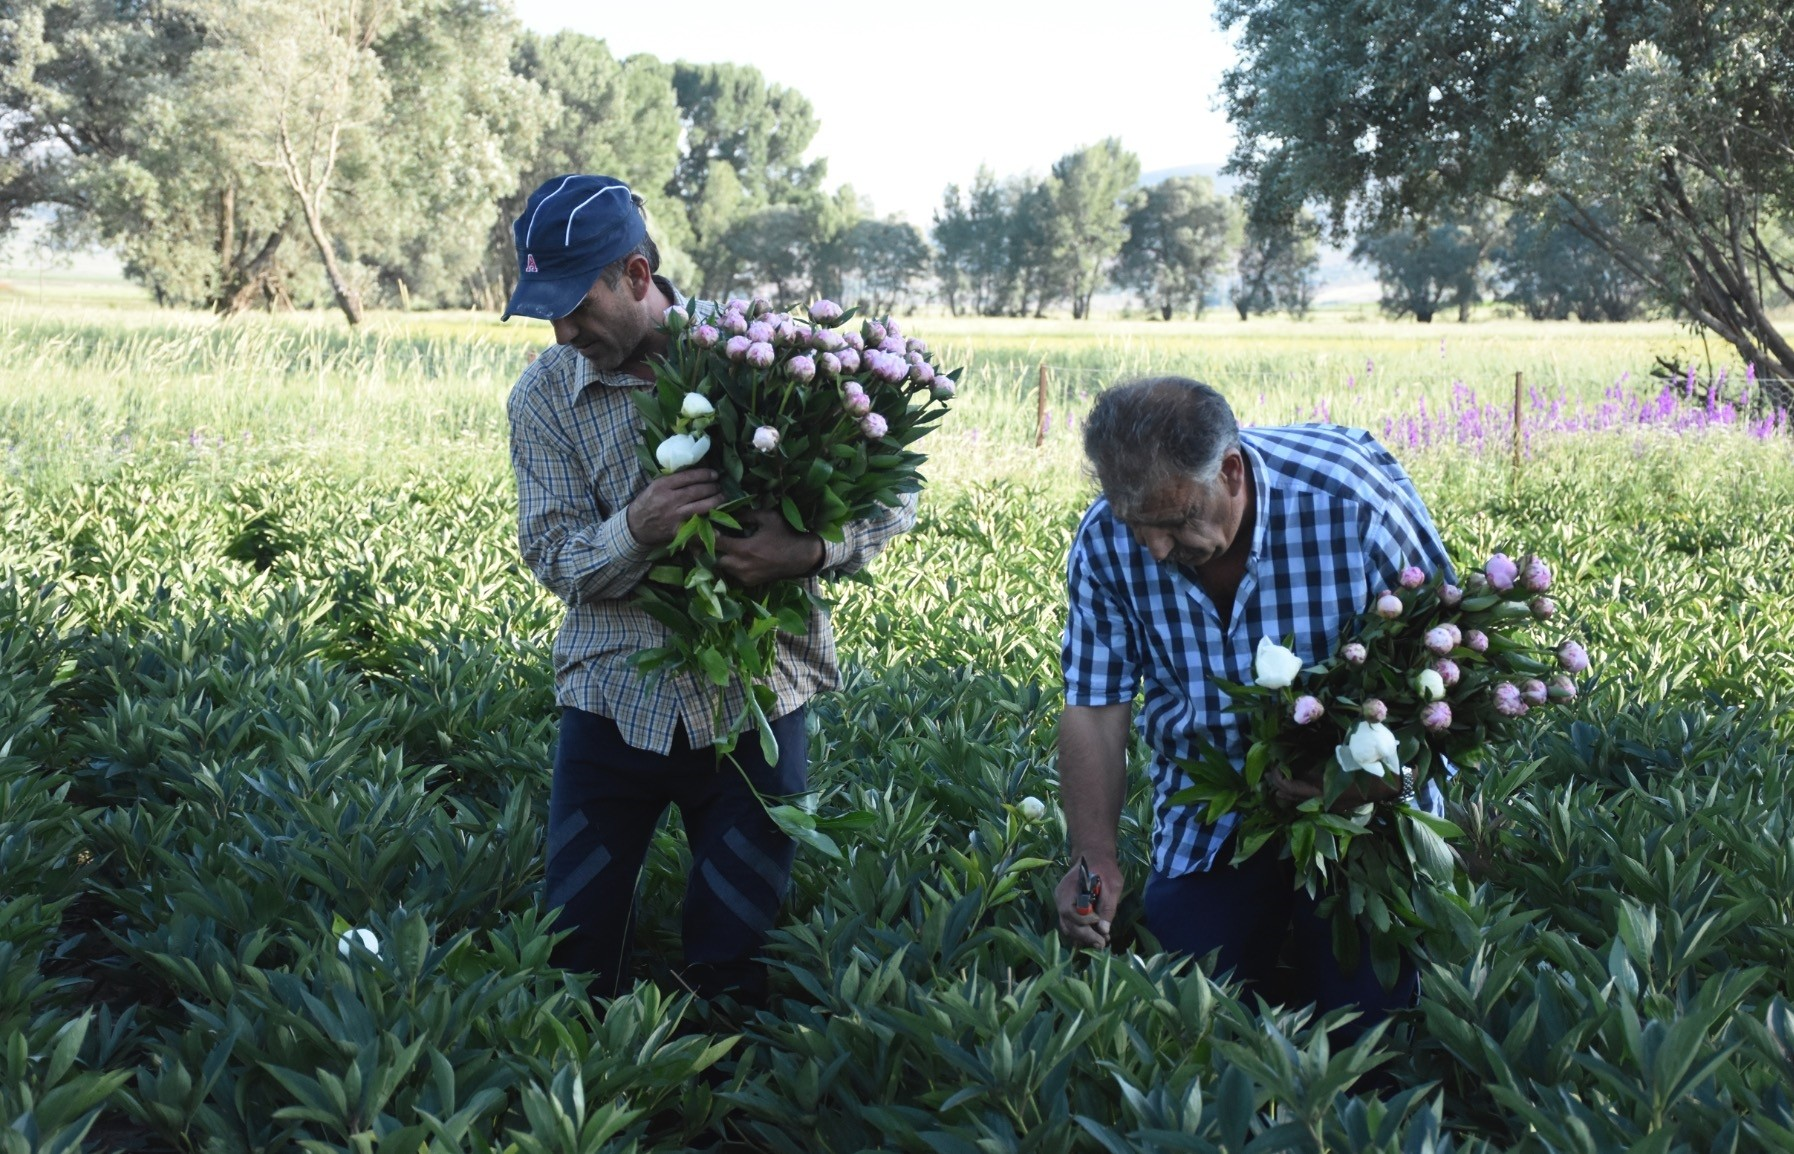 The Hu00f6ke brothers picking peonies